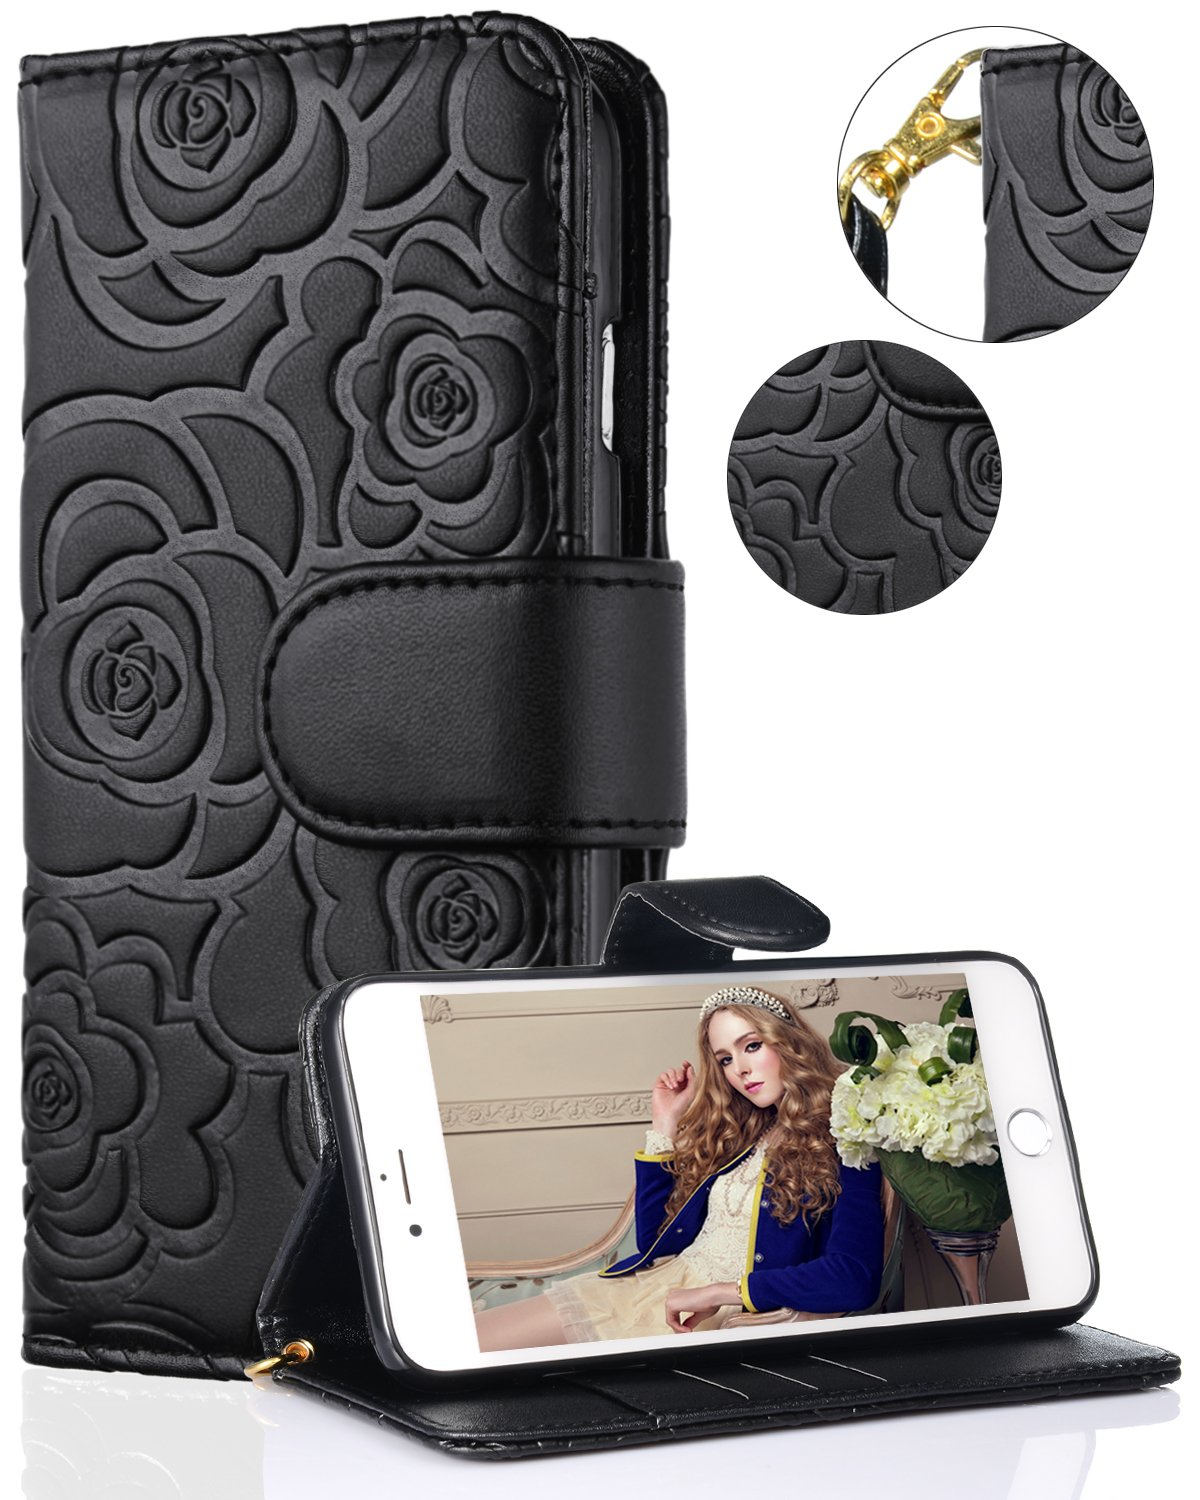 iPhone 8 Plus Case,iPhone 7 Plus Wallet Case,FLYEE Premium Flip Wallet Leather [Emboss Flower] Magnetic Protective Cover with Card Slots for iPhone7 Plus iPhone8 Plus 5.5 Inch yahuacha-Black by FLYEE